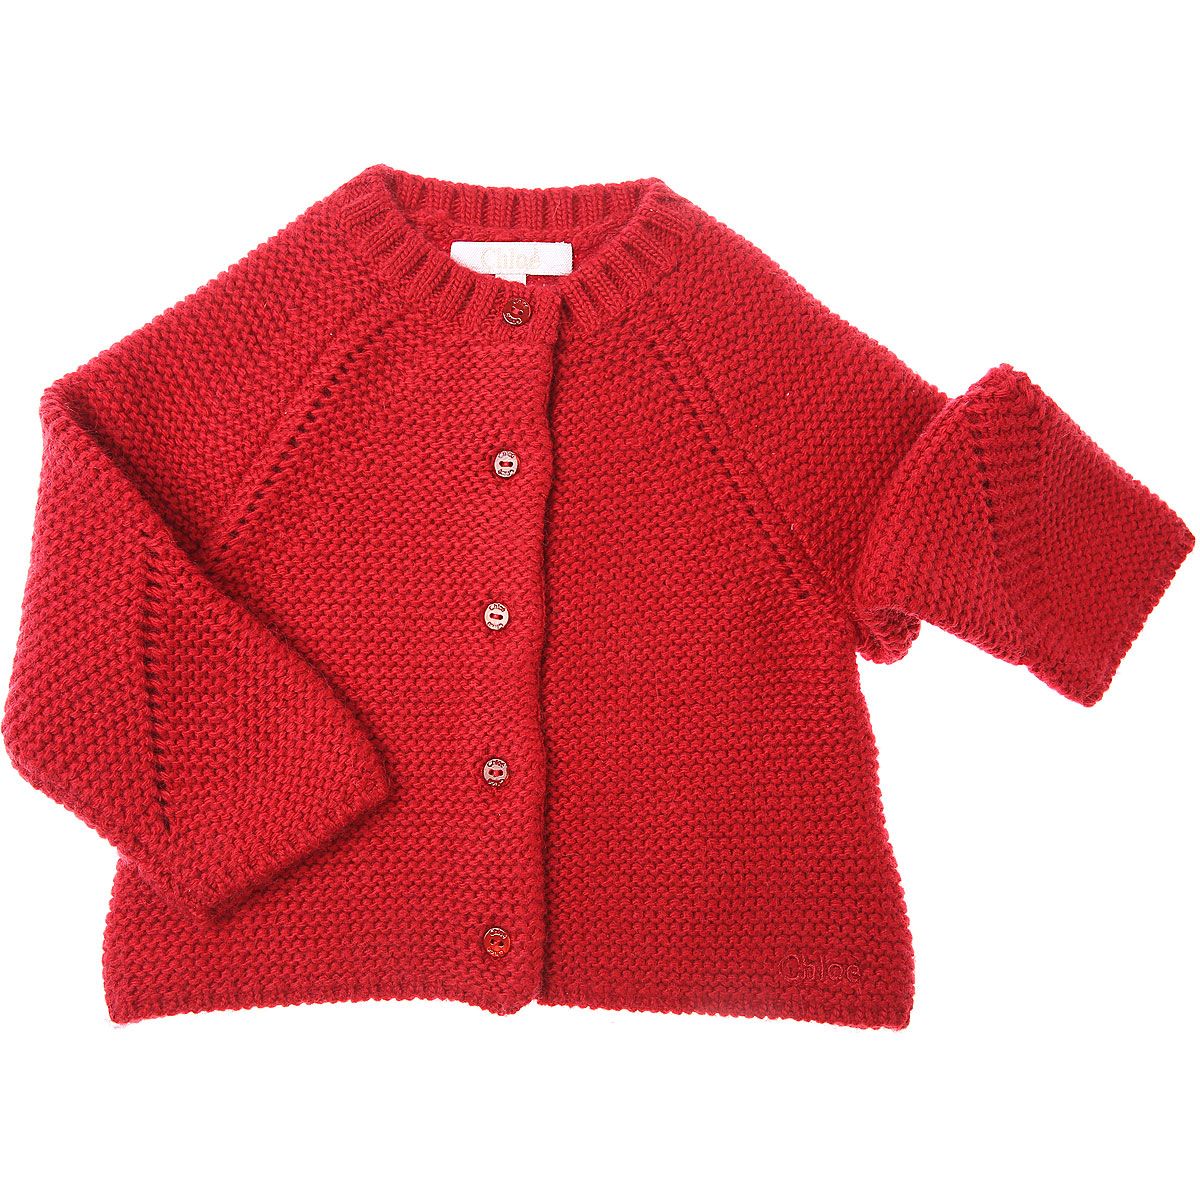 Chloe Baby Sweaters for Girls On Sale, Red, polyamide, 2019, 12M 18M 2Y 3Y 6M 9M